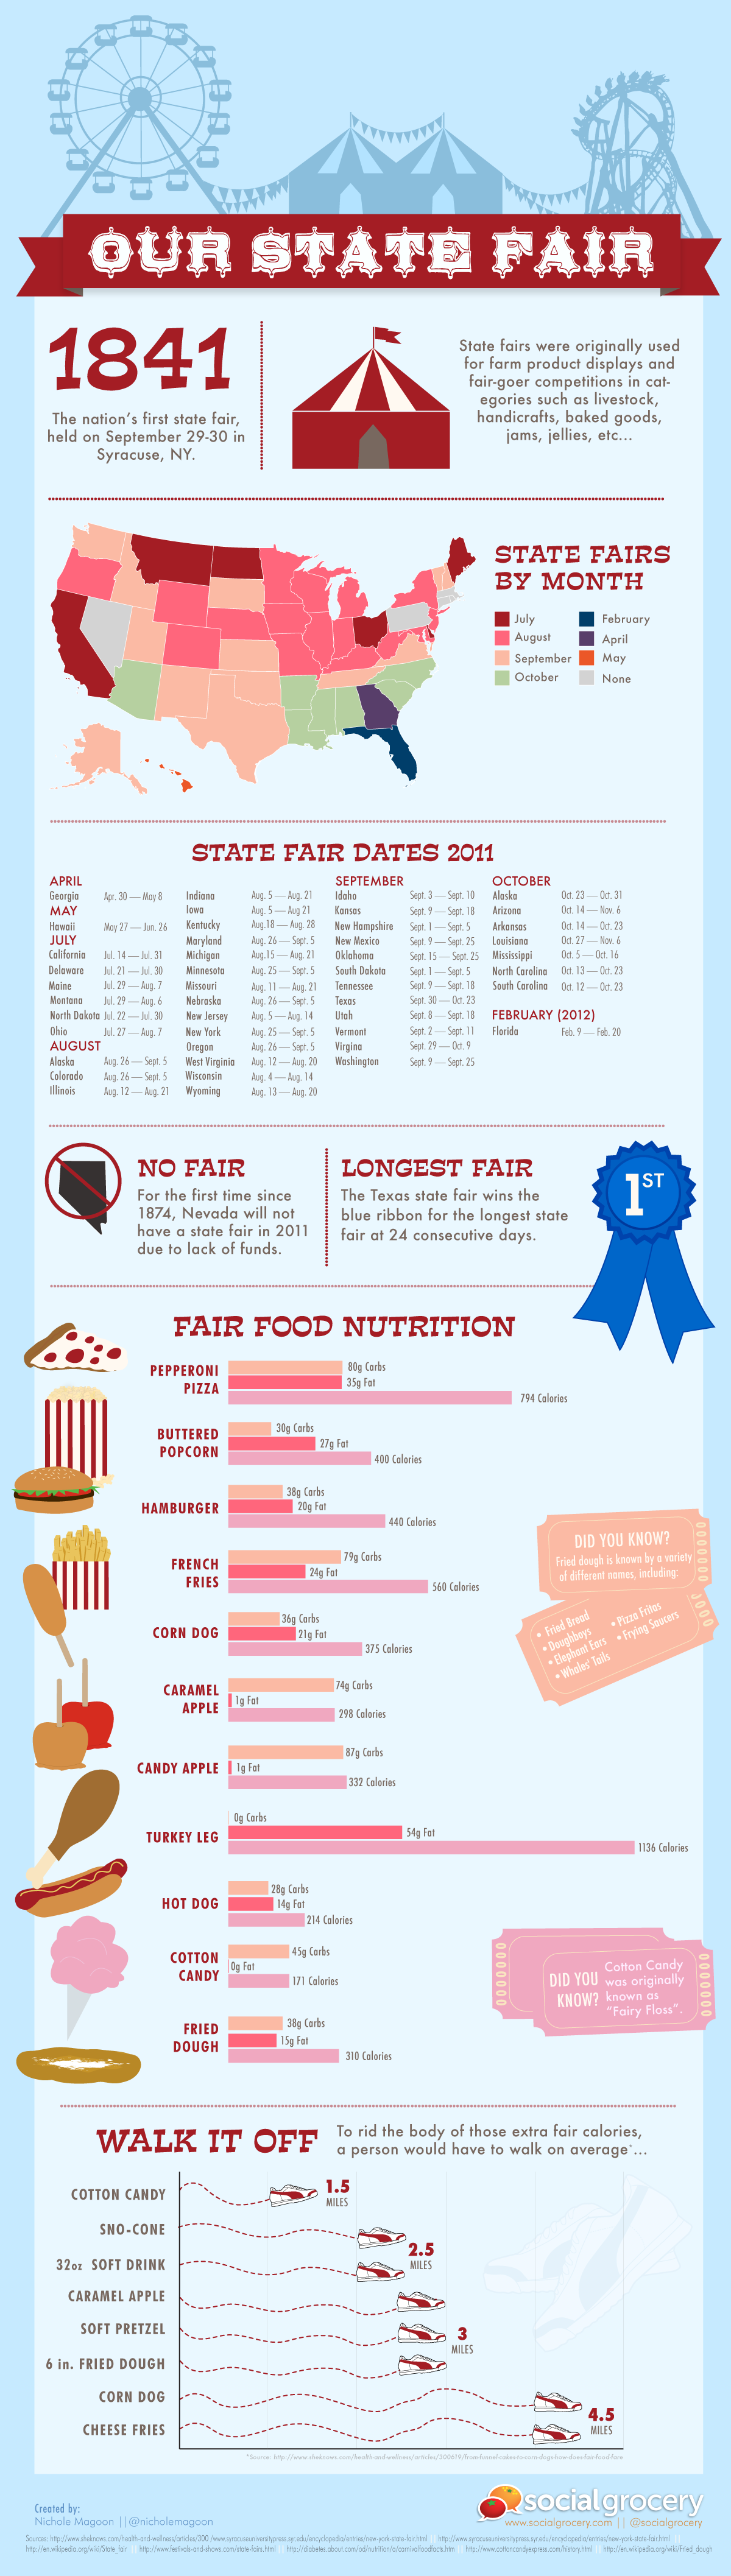 Interesting Facts About State Fairs